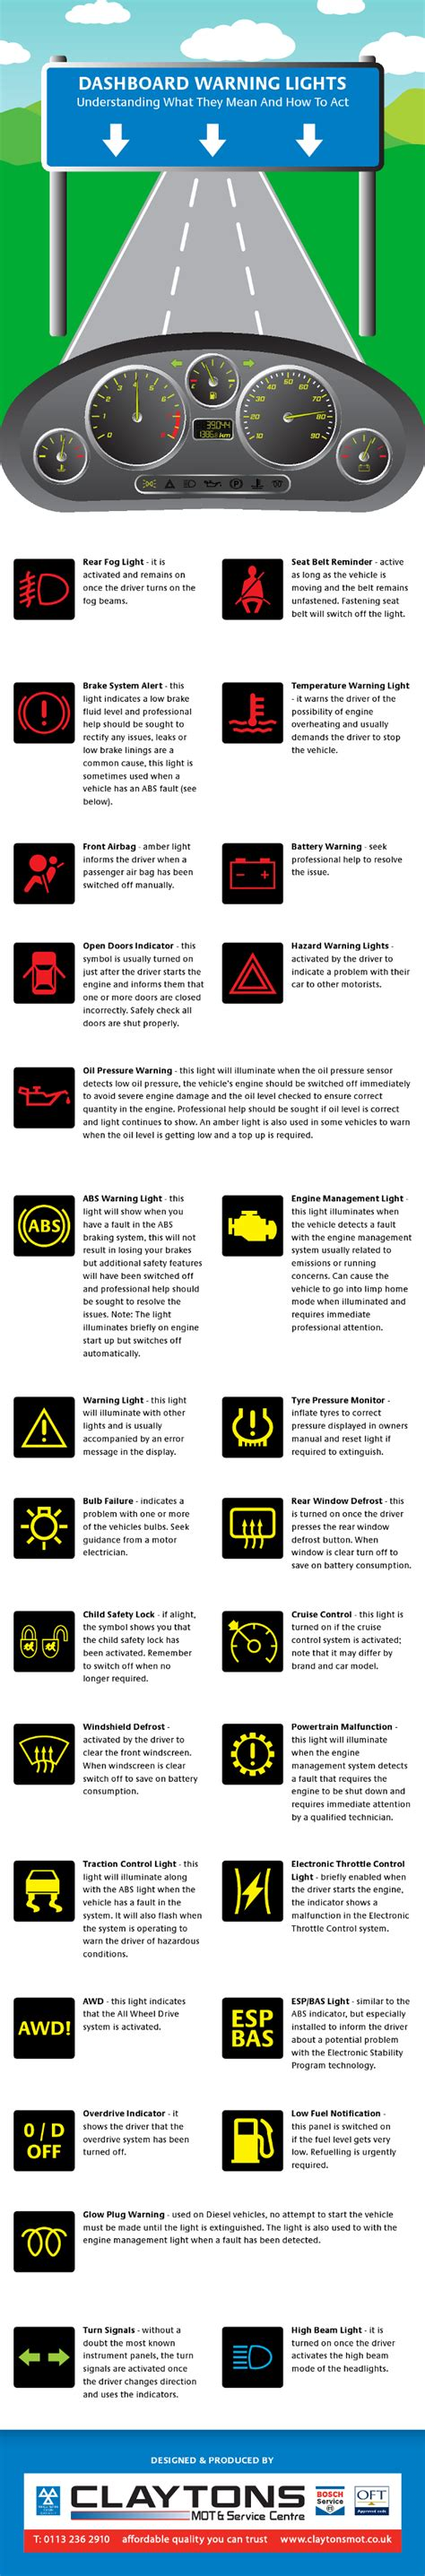 do you your dashboard warning lights